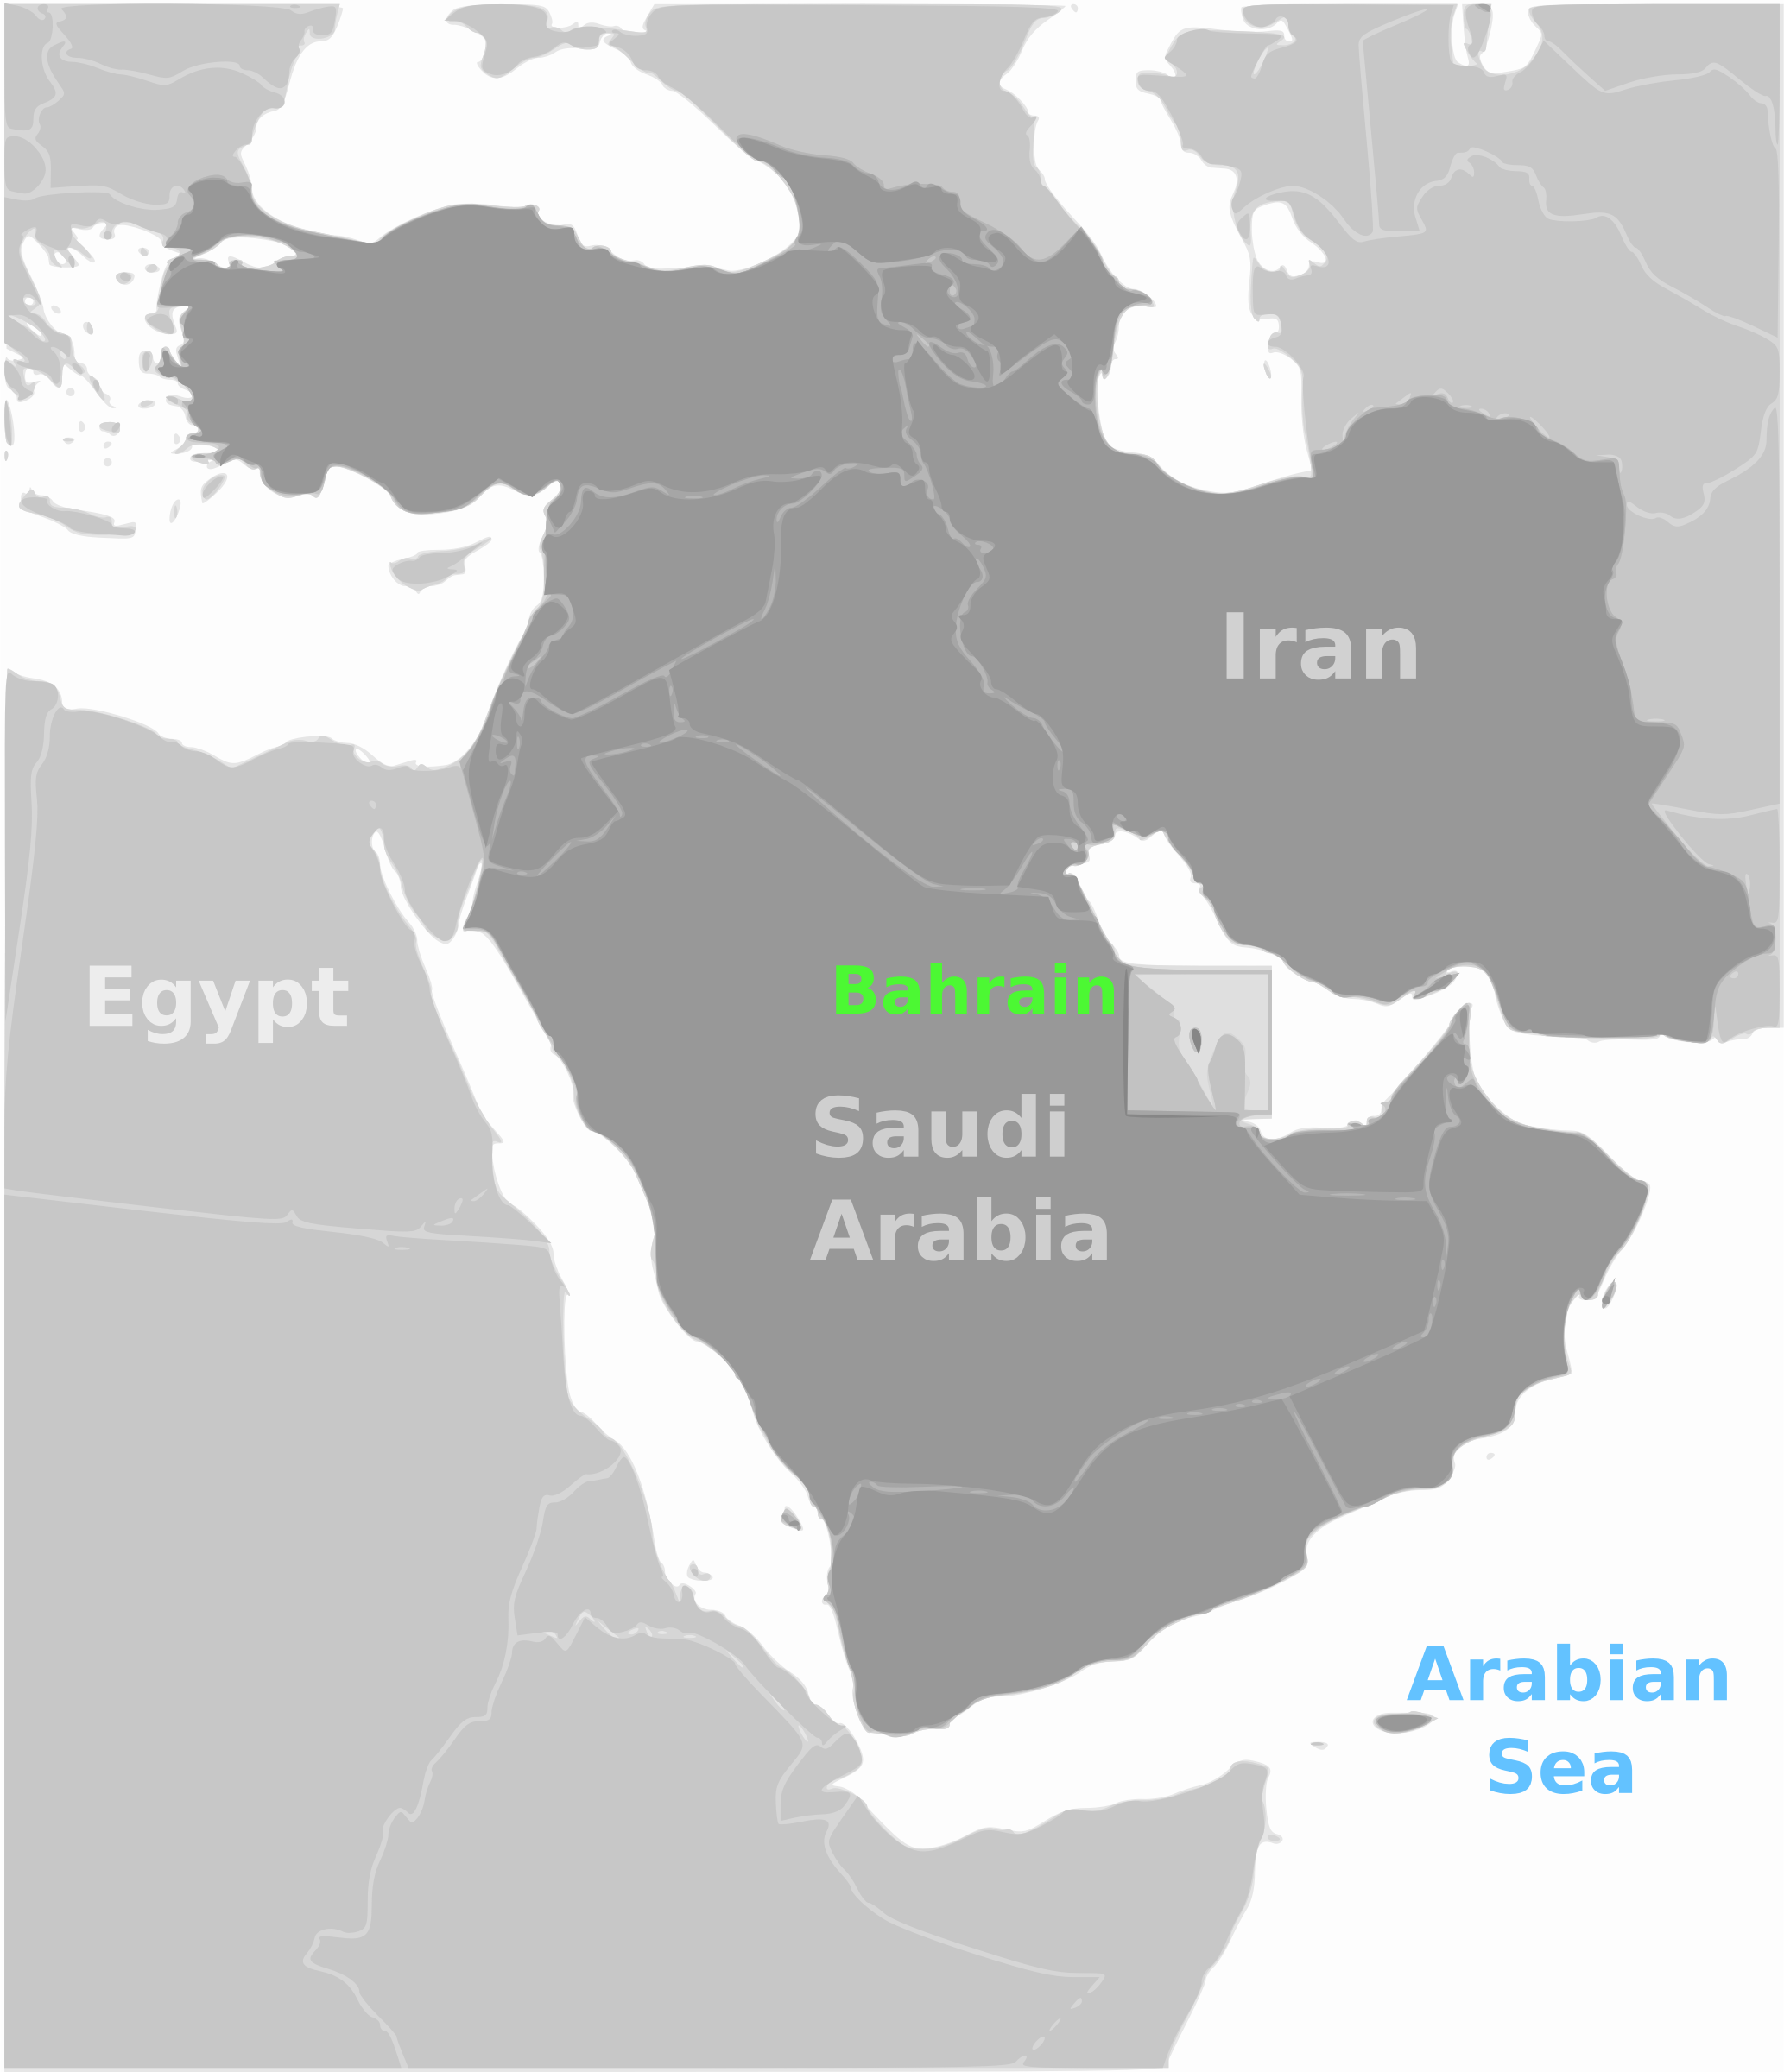 Bahrain location label by wpclipart